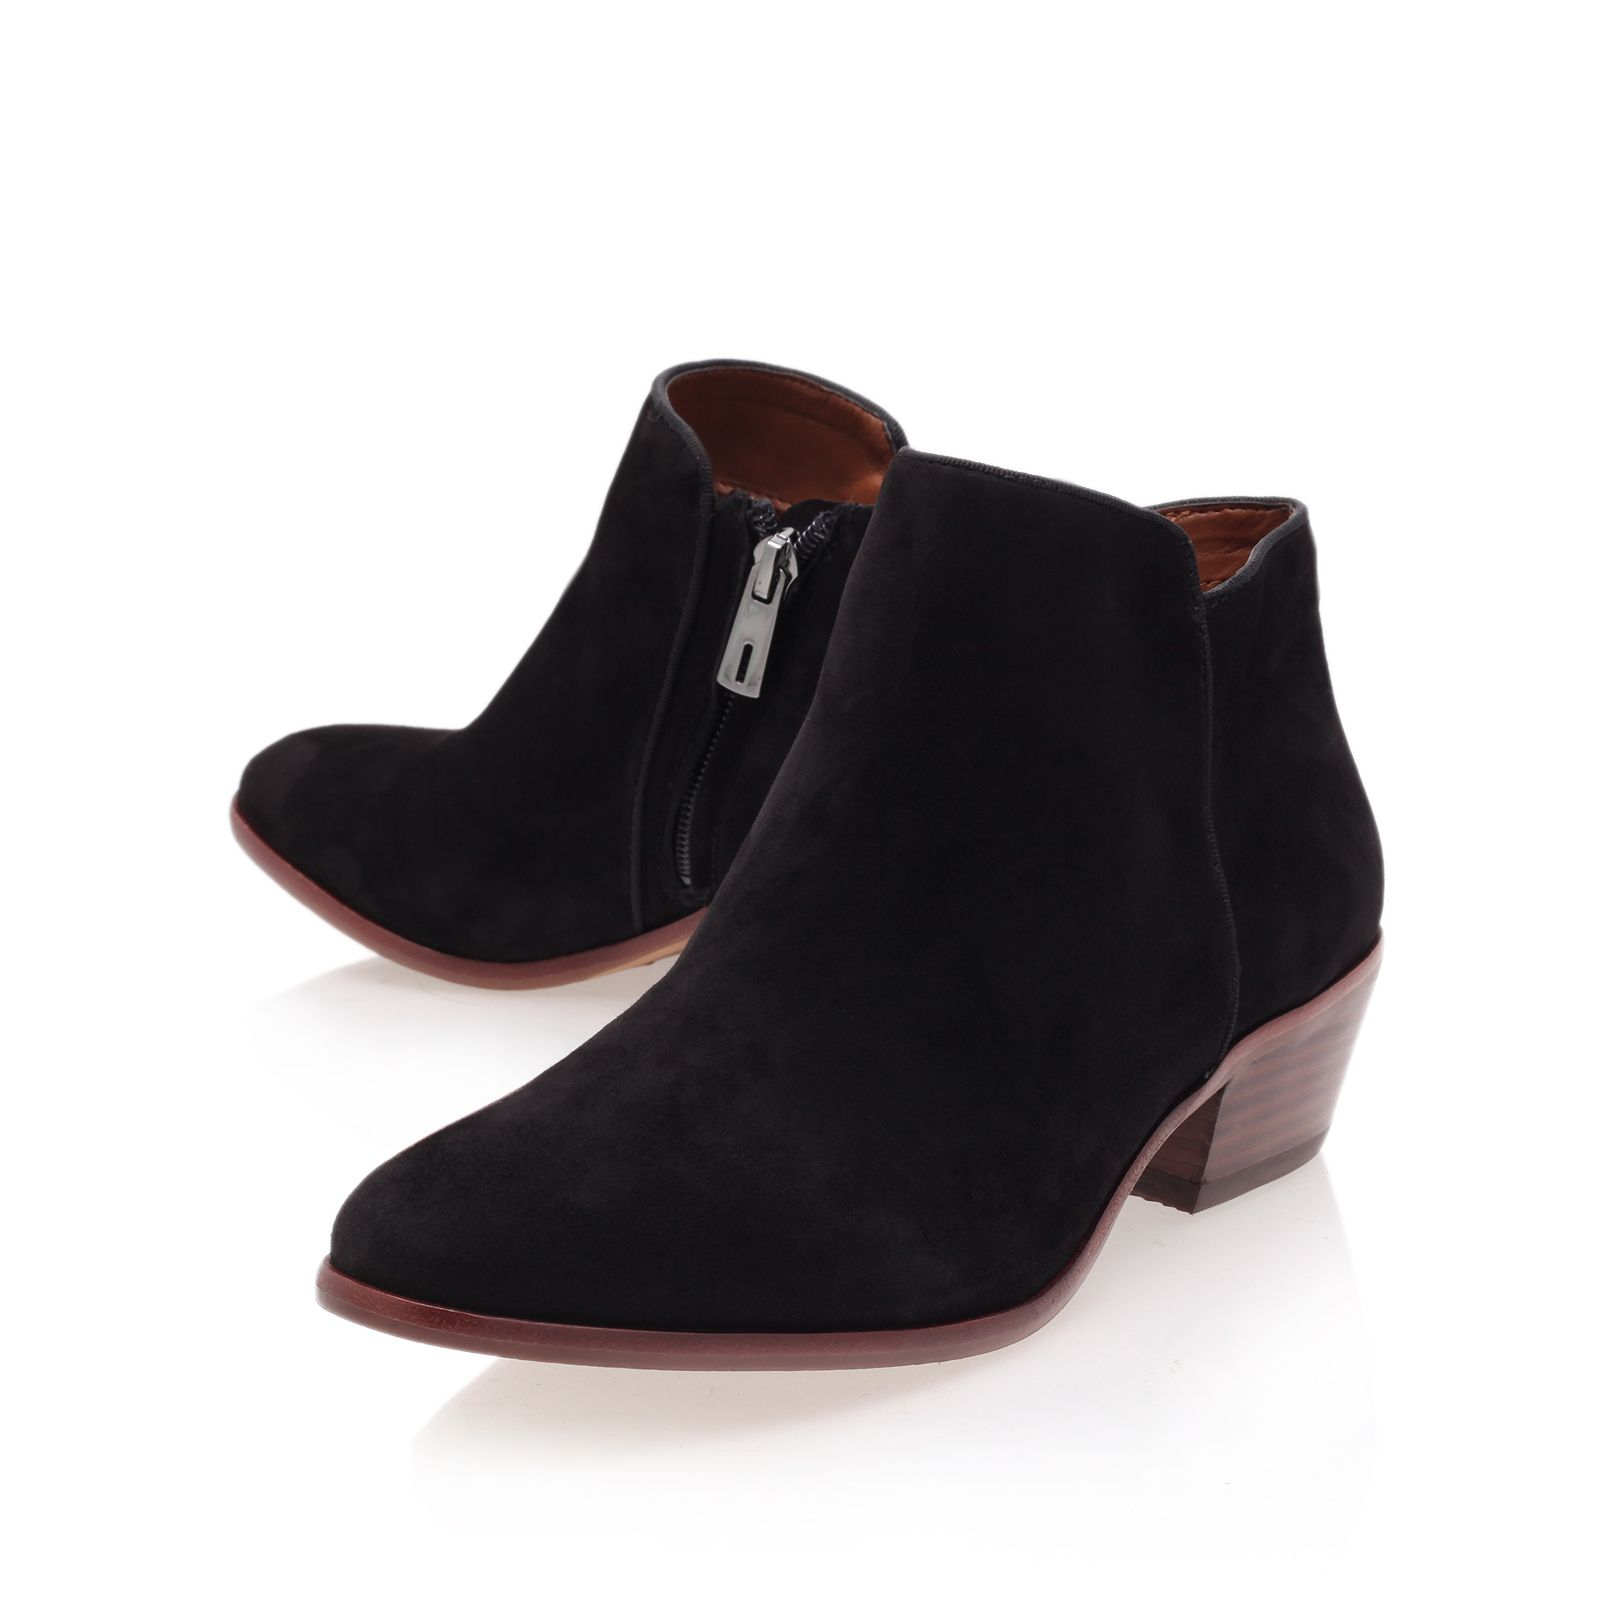 Petty ankle boots